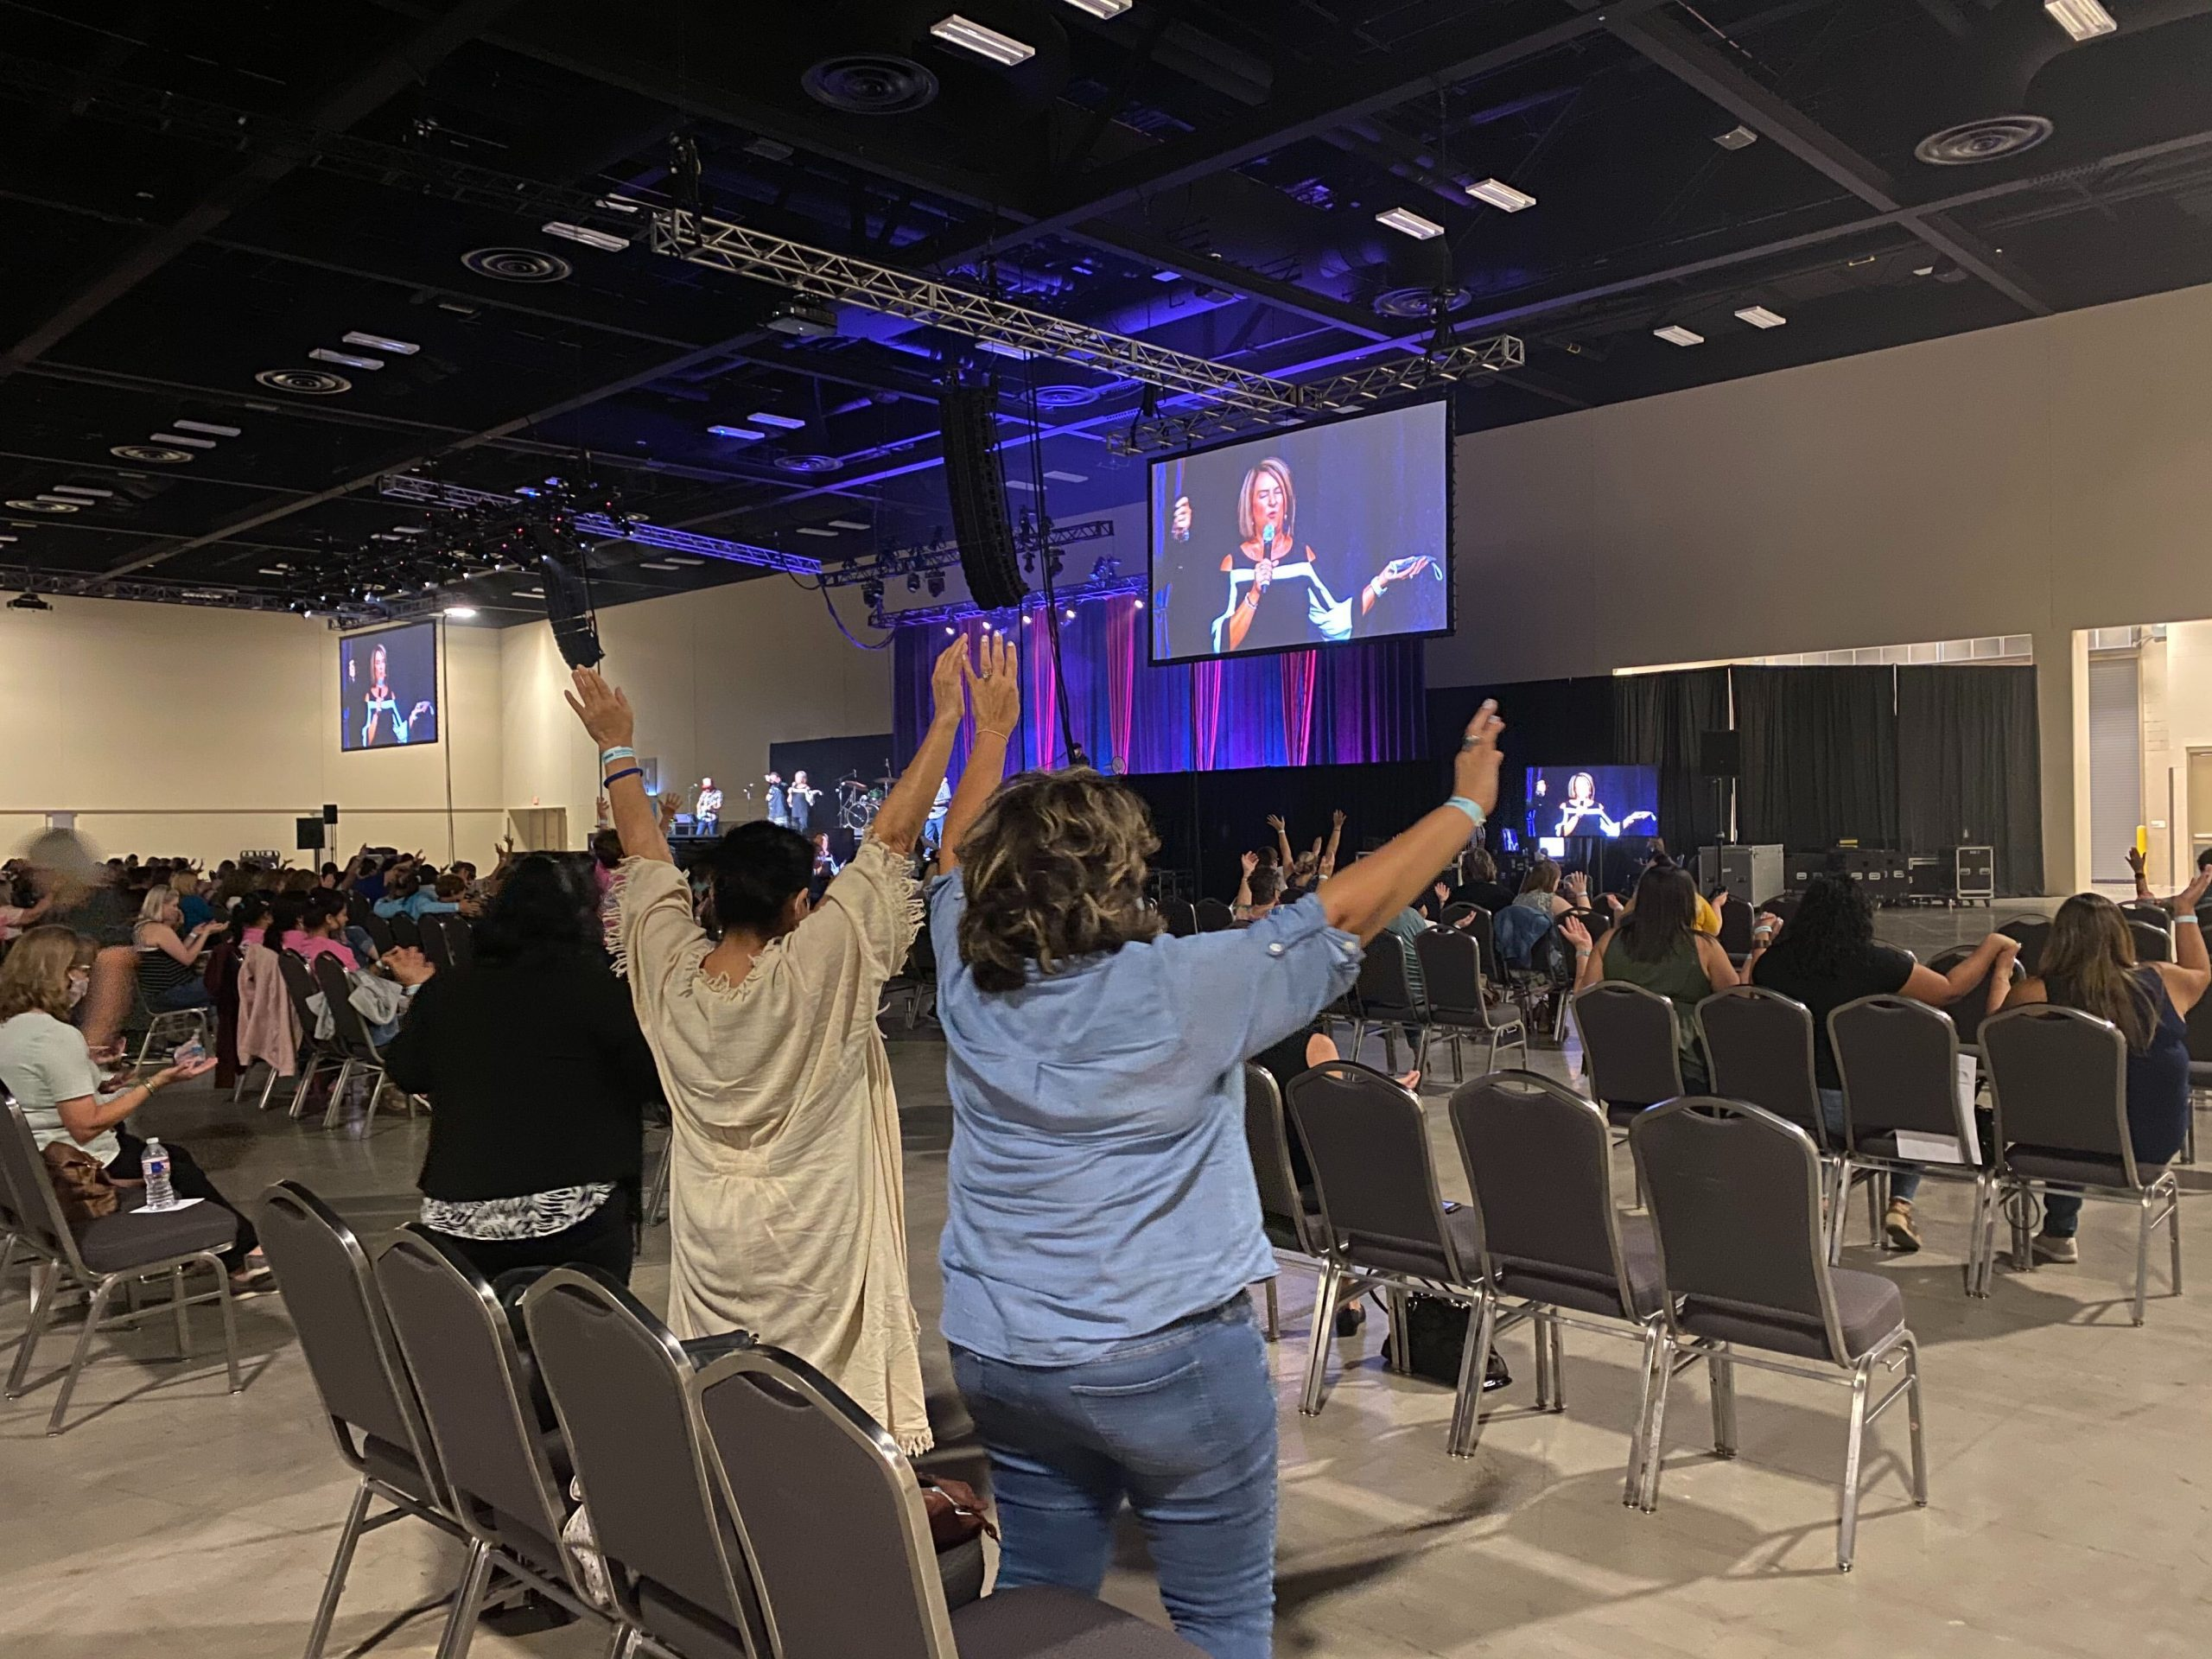 Attendees raise their hands in prayer during the Women of Joy conference at the Henry B. González Convention Center.